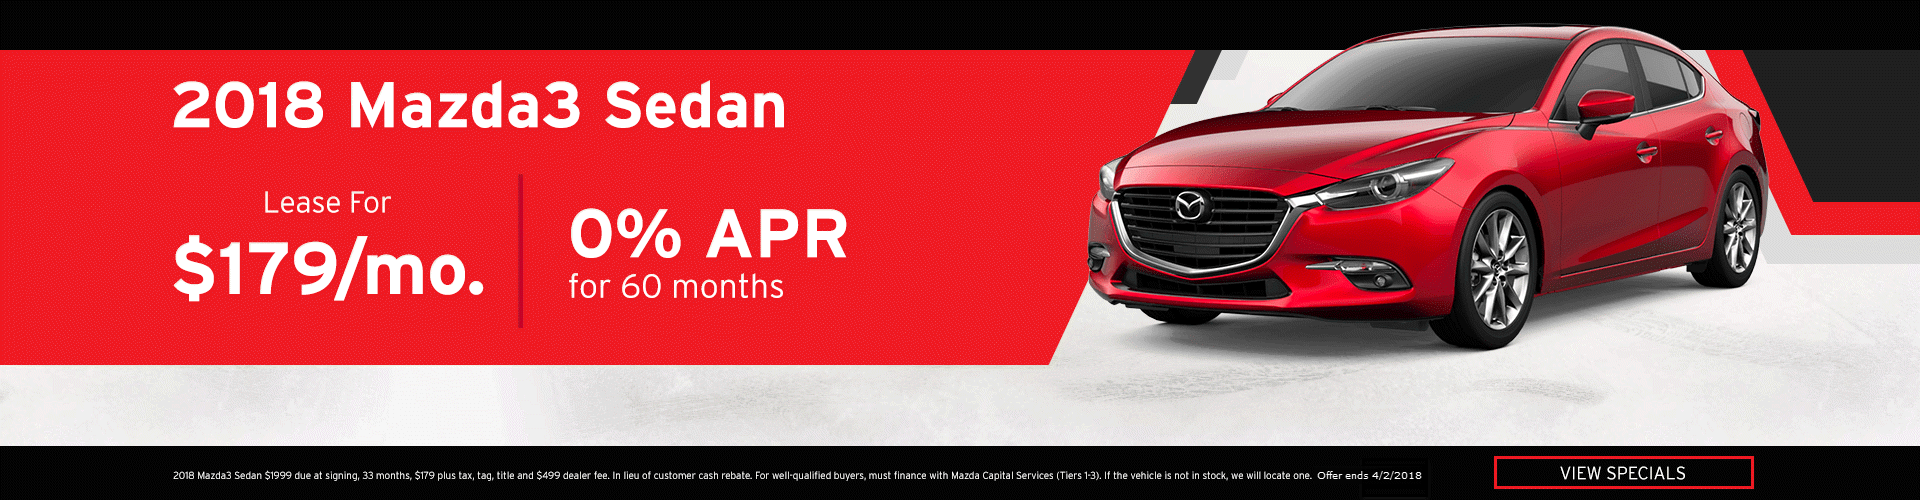 March Mazda3 Special Offer